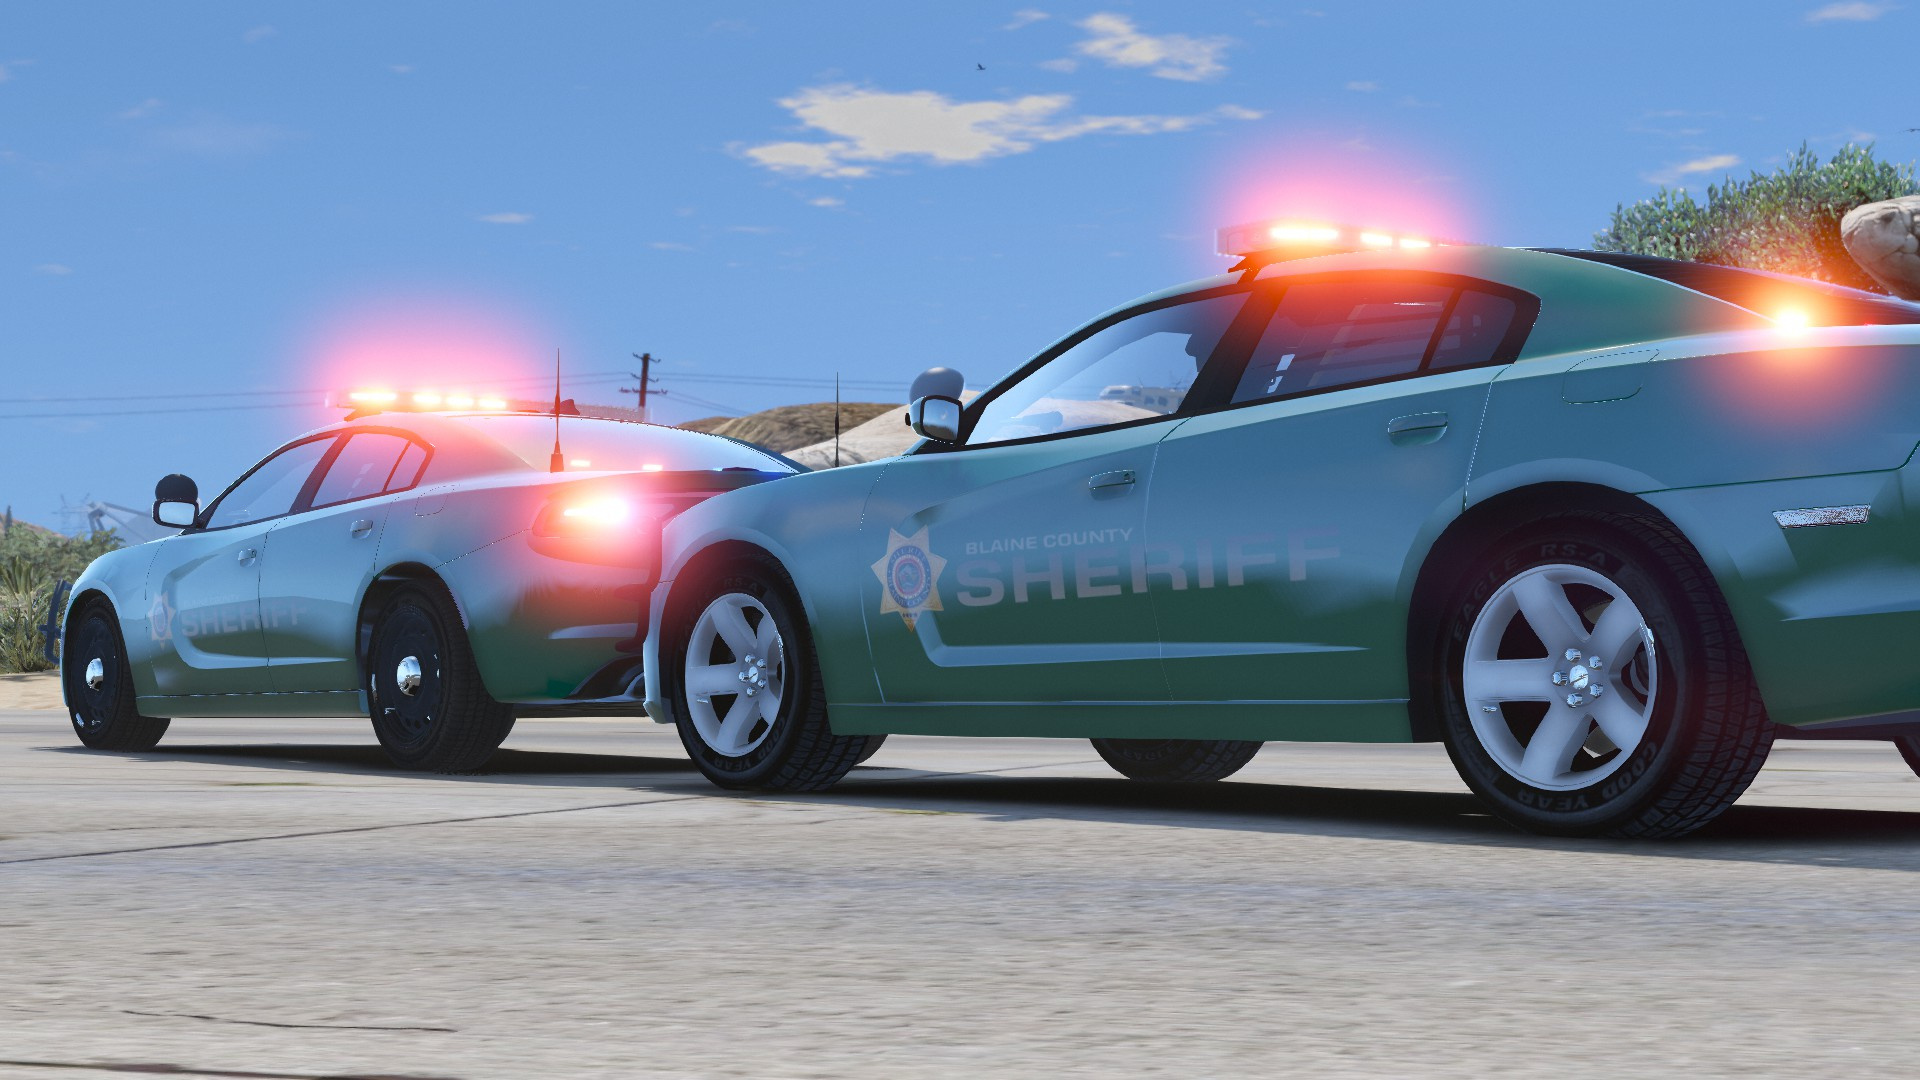 Blaine County Sheriff Texture Pack Gta5 Mods Com